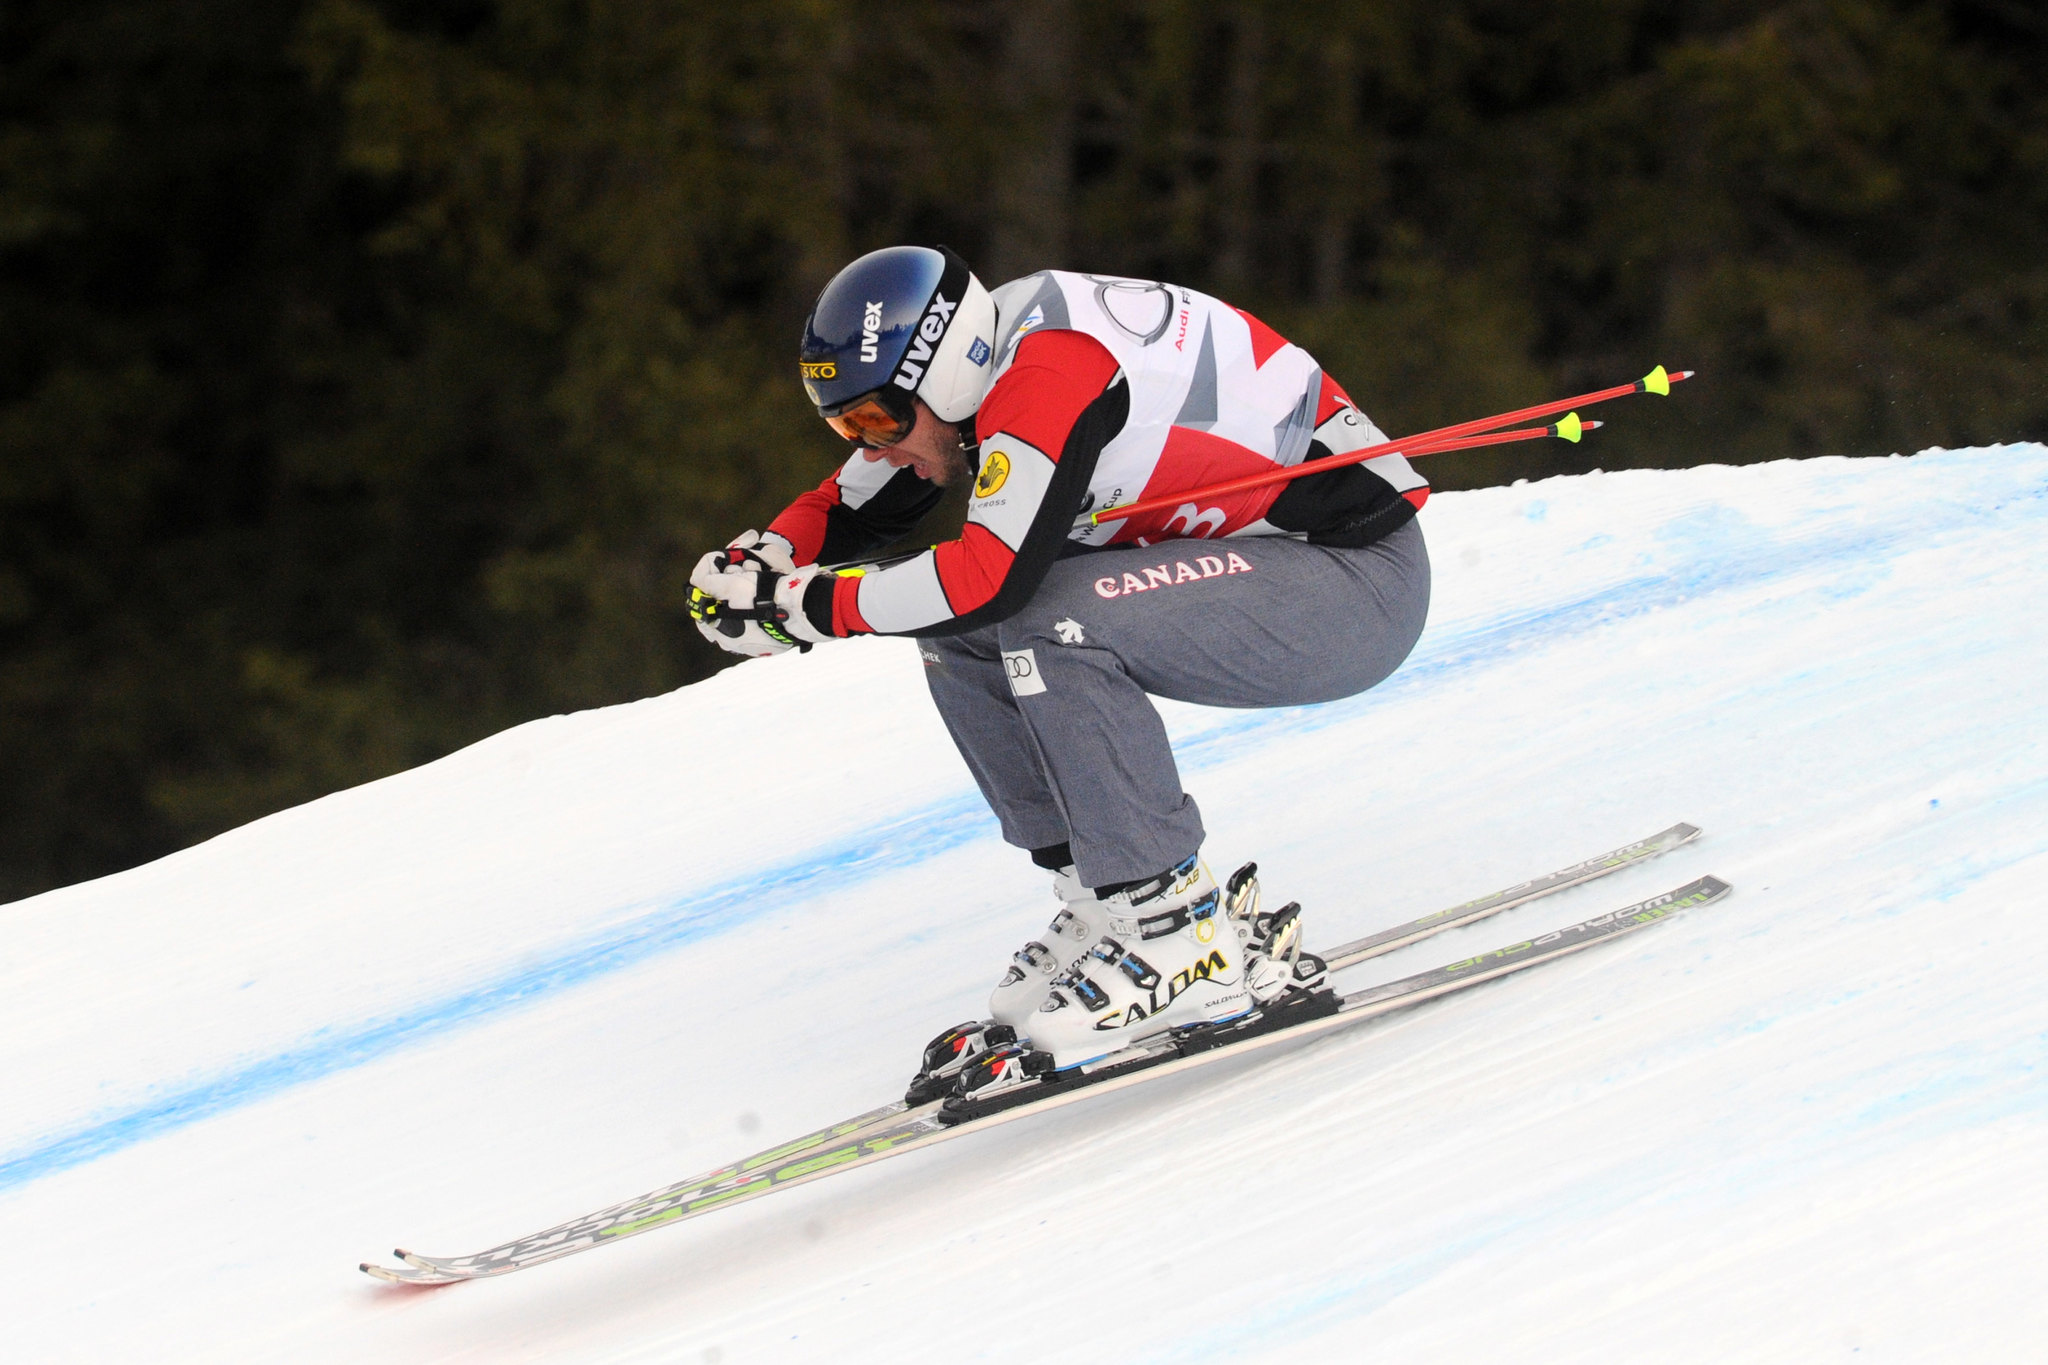 Dave Duncan in a qualifying run at the ski cross World Cup in Innichen/San Candido, Italy.